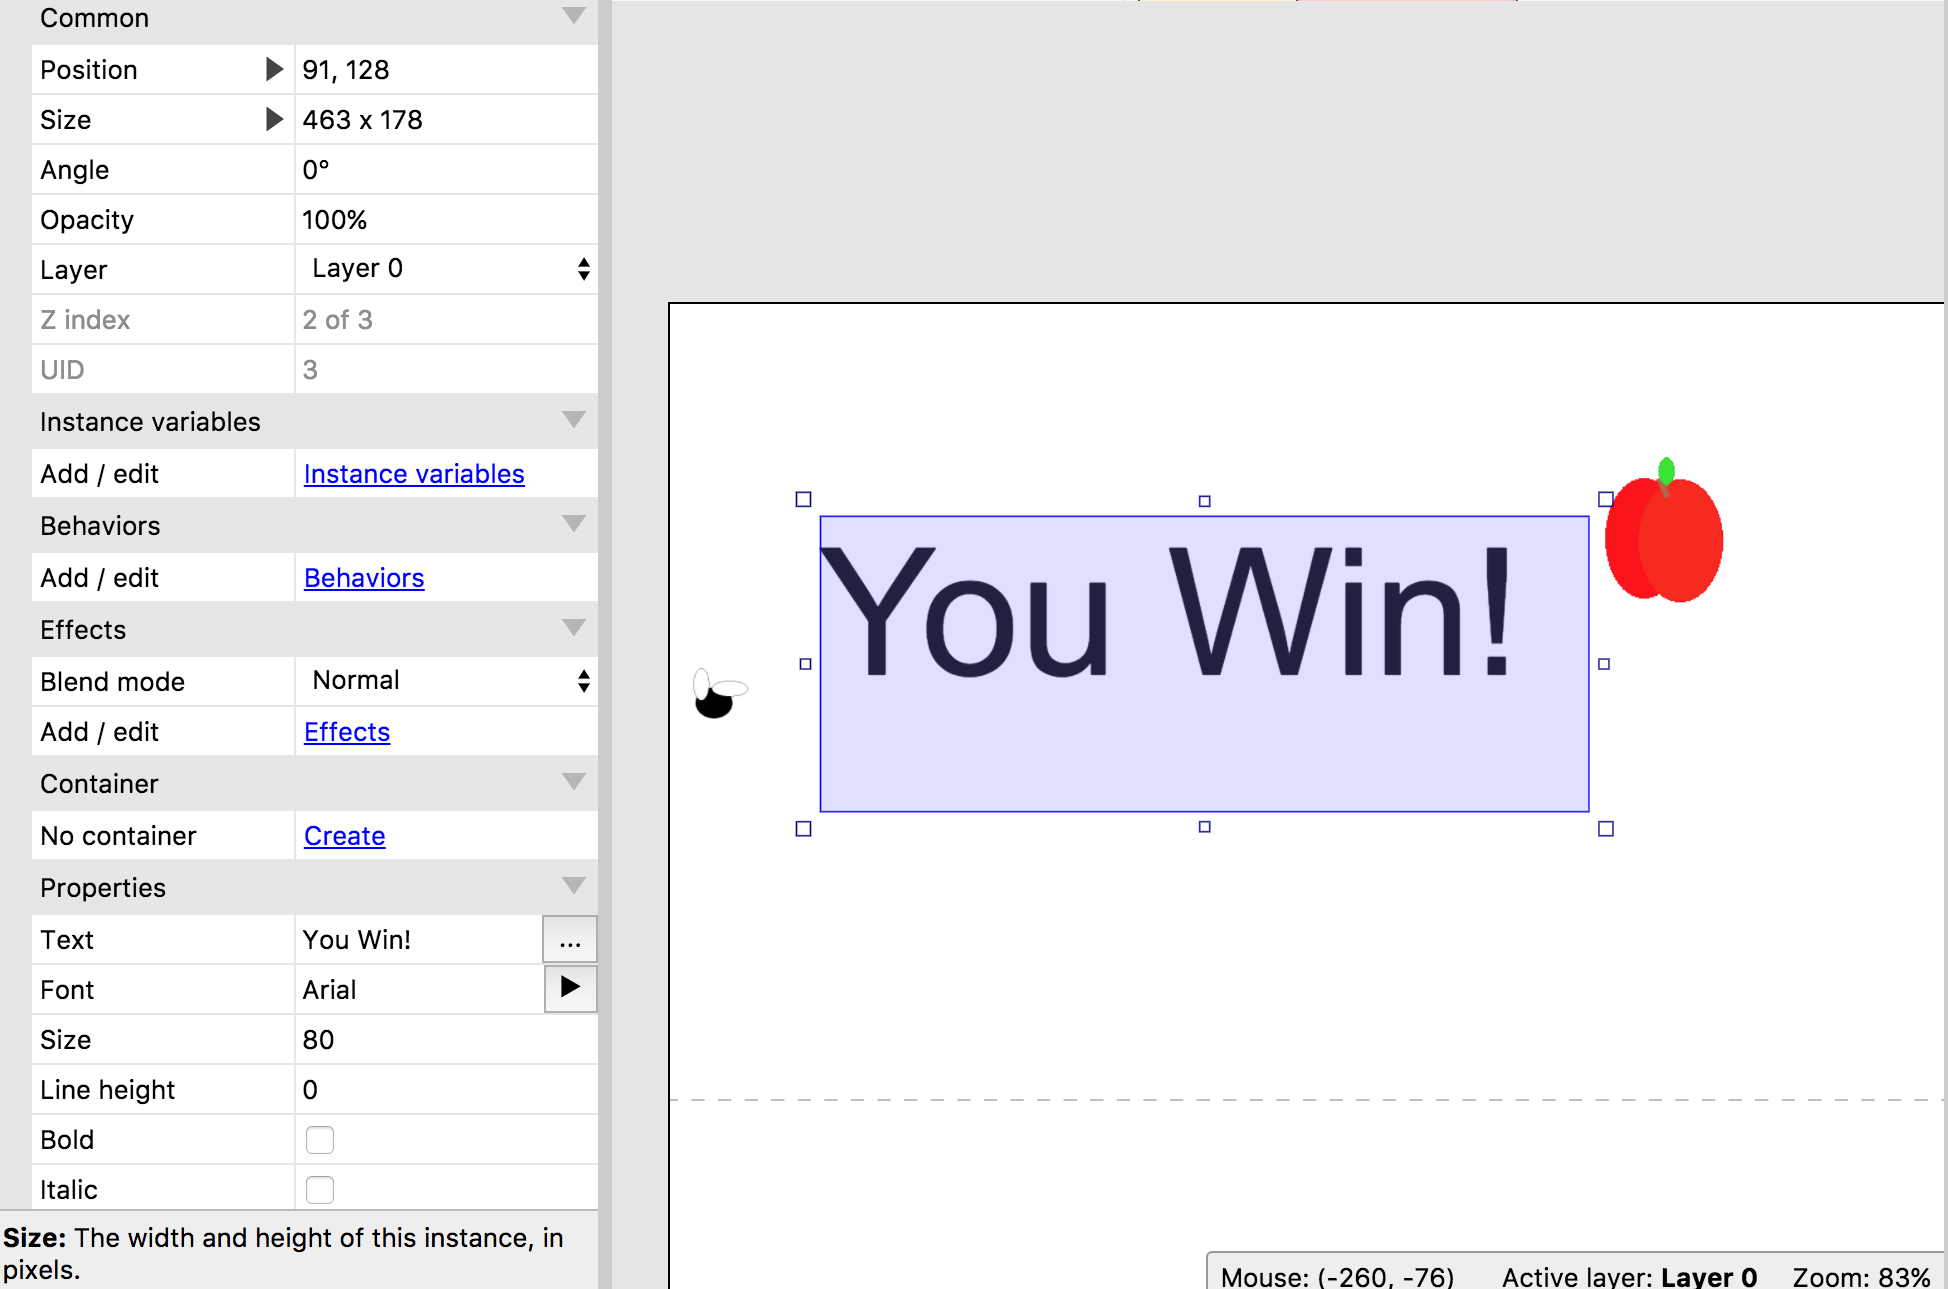 Text showing 'You win!'